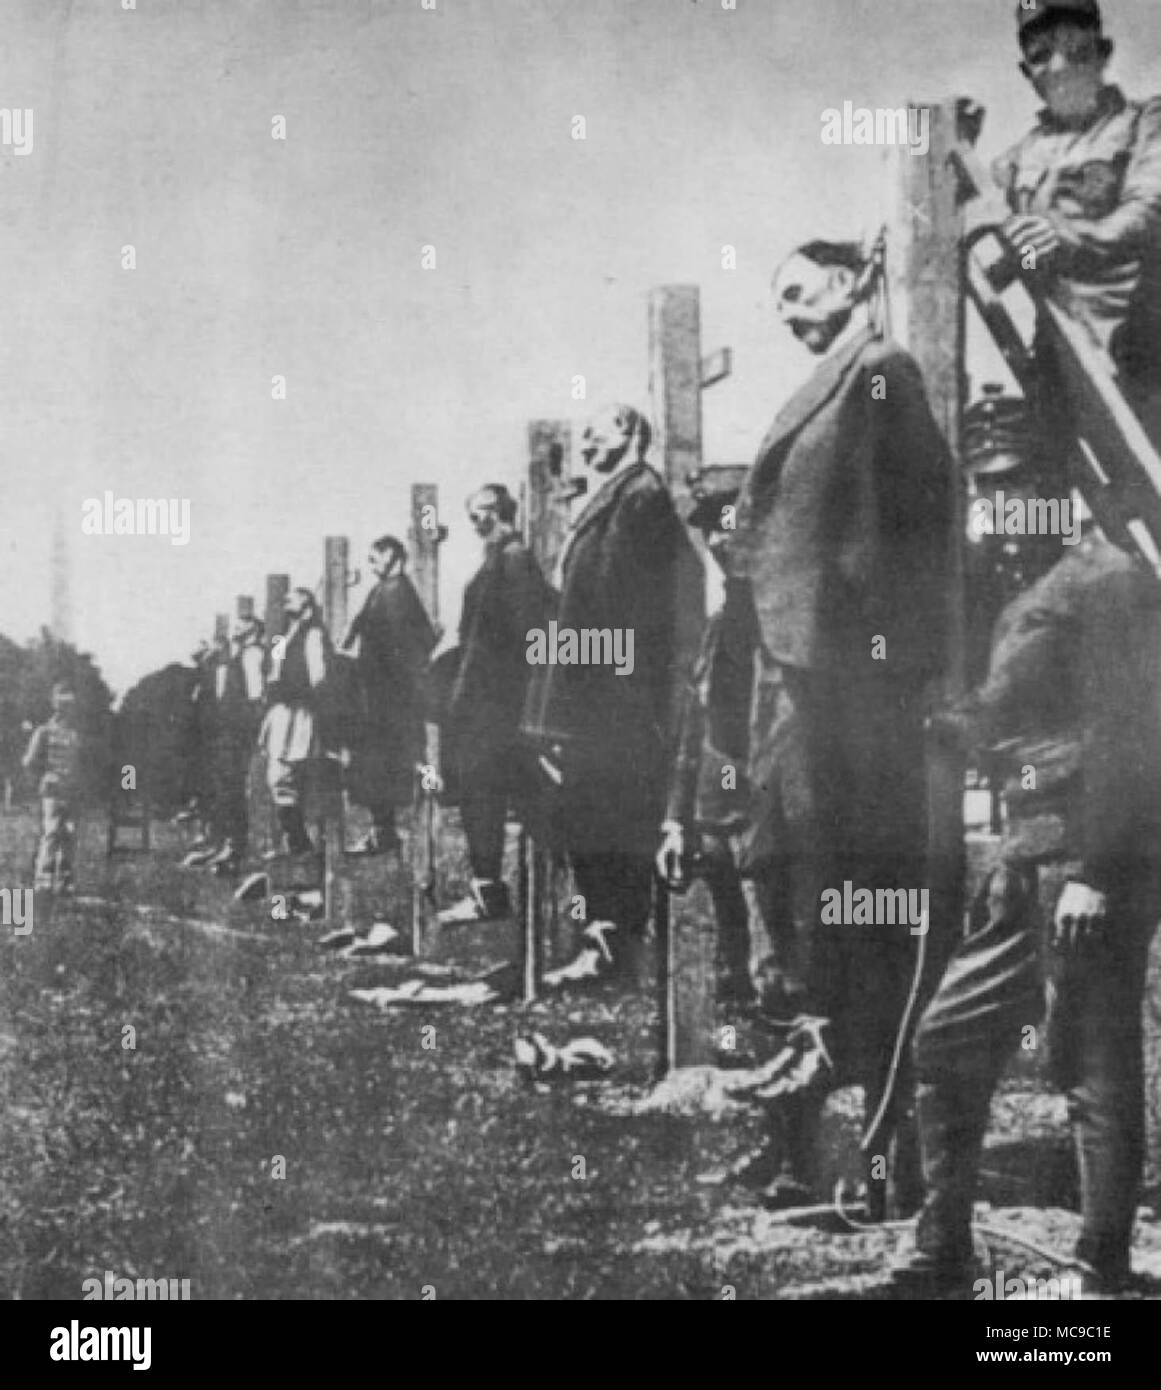 Mass execution of Serbs by Austro-Hungarian army in 1916 - Stock Image